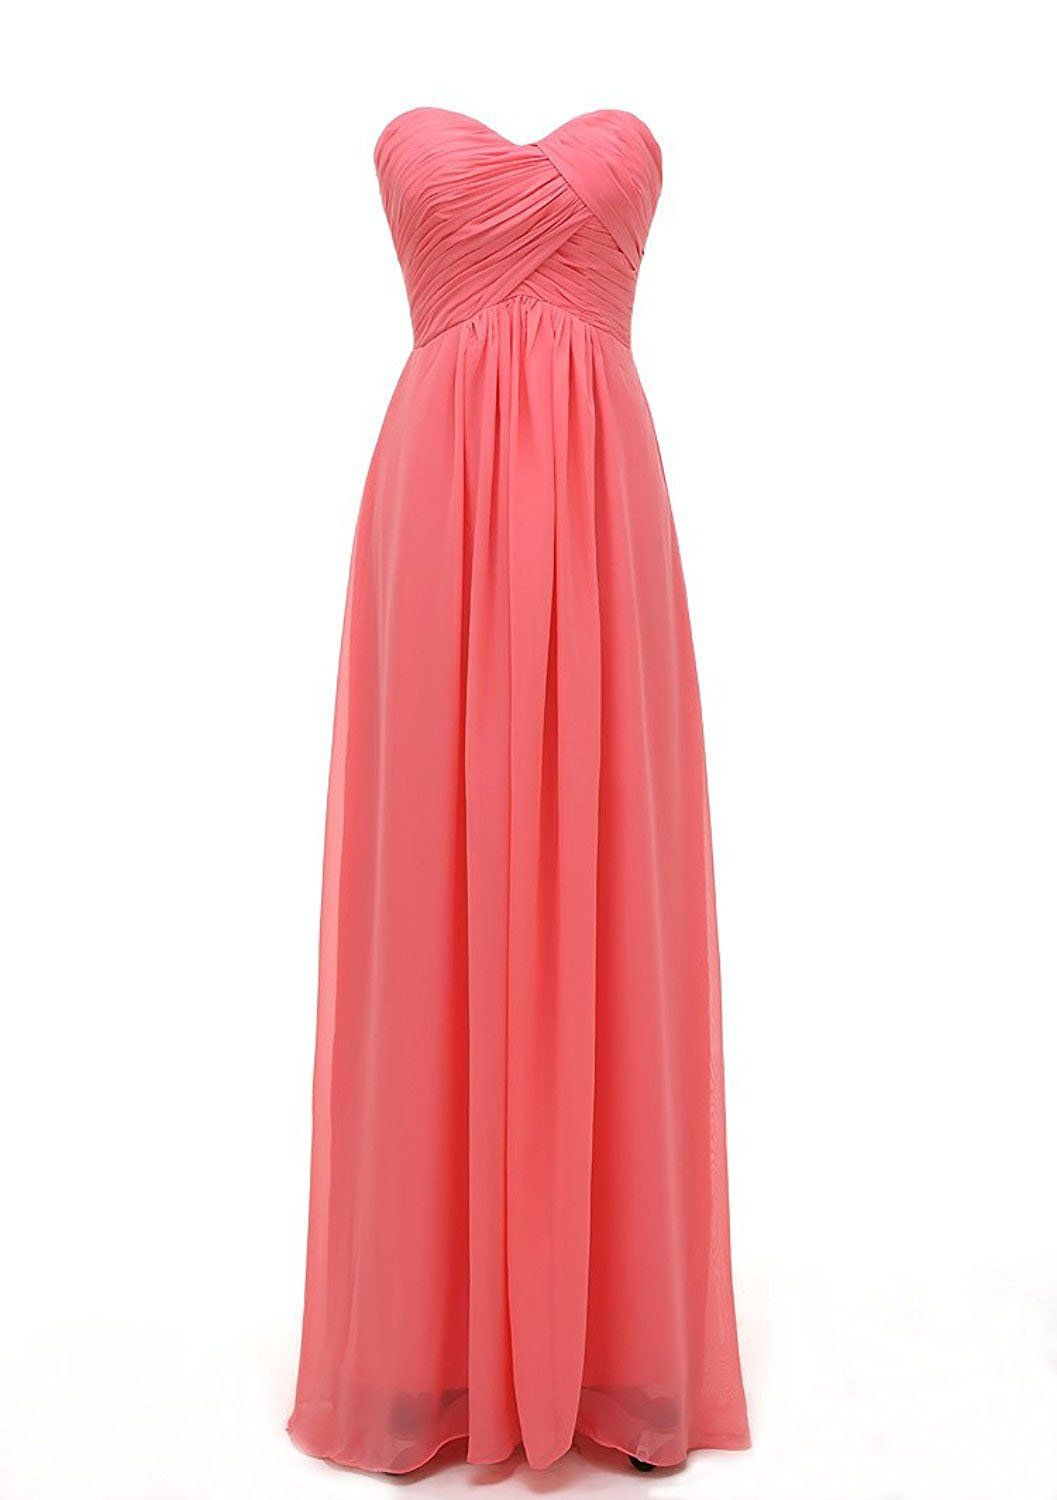 Kiss dress womens bridesmaid dresses long sweetheart prom gowns